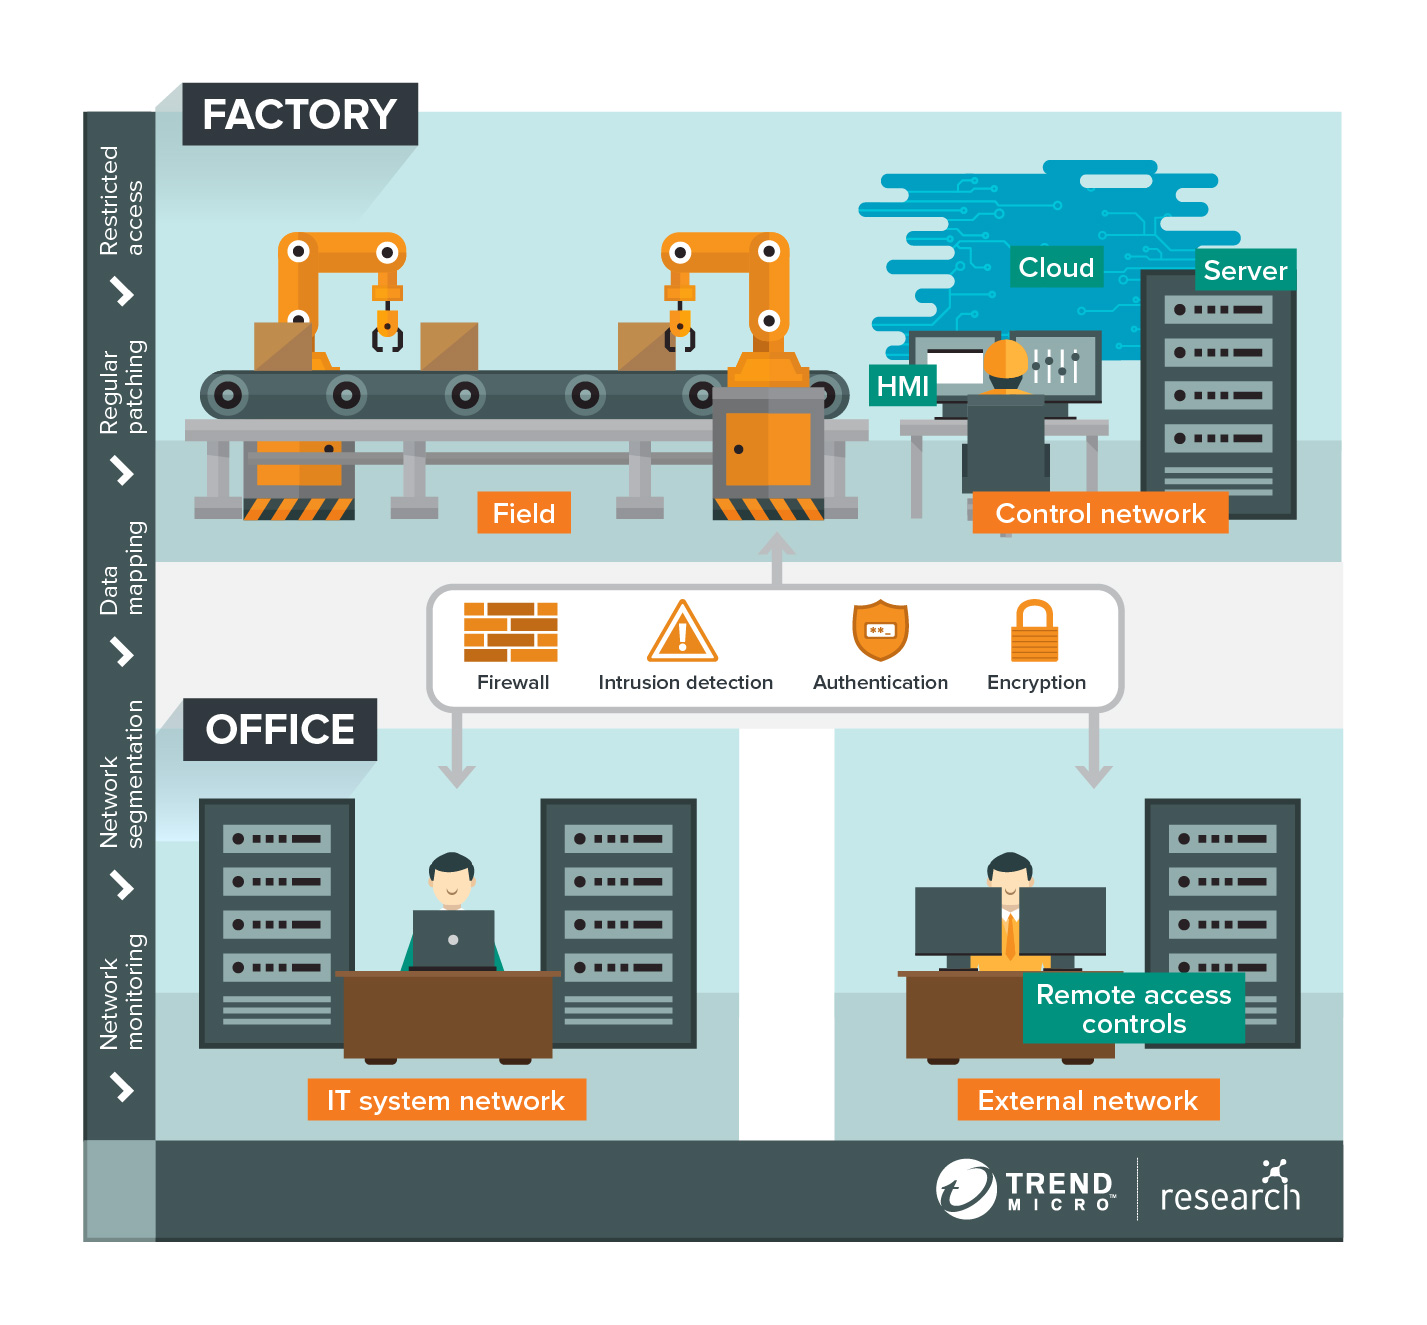 security architecture for smart factories